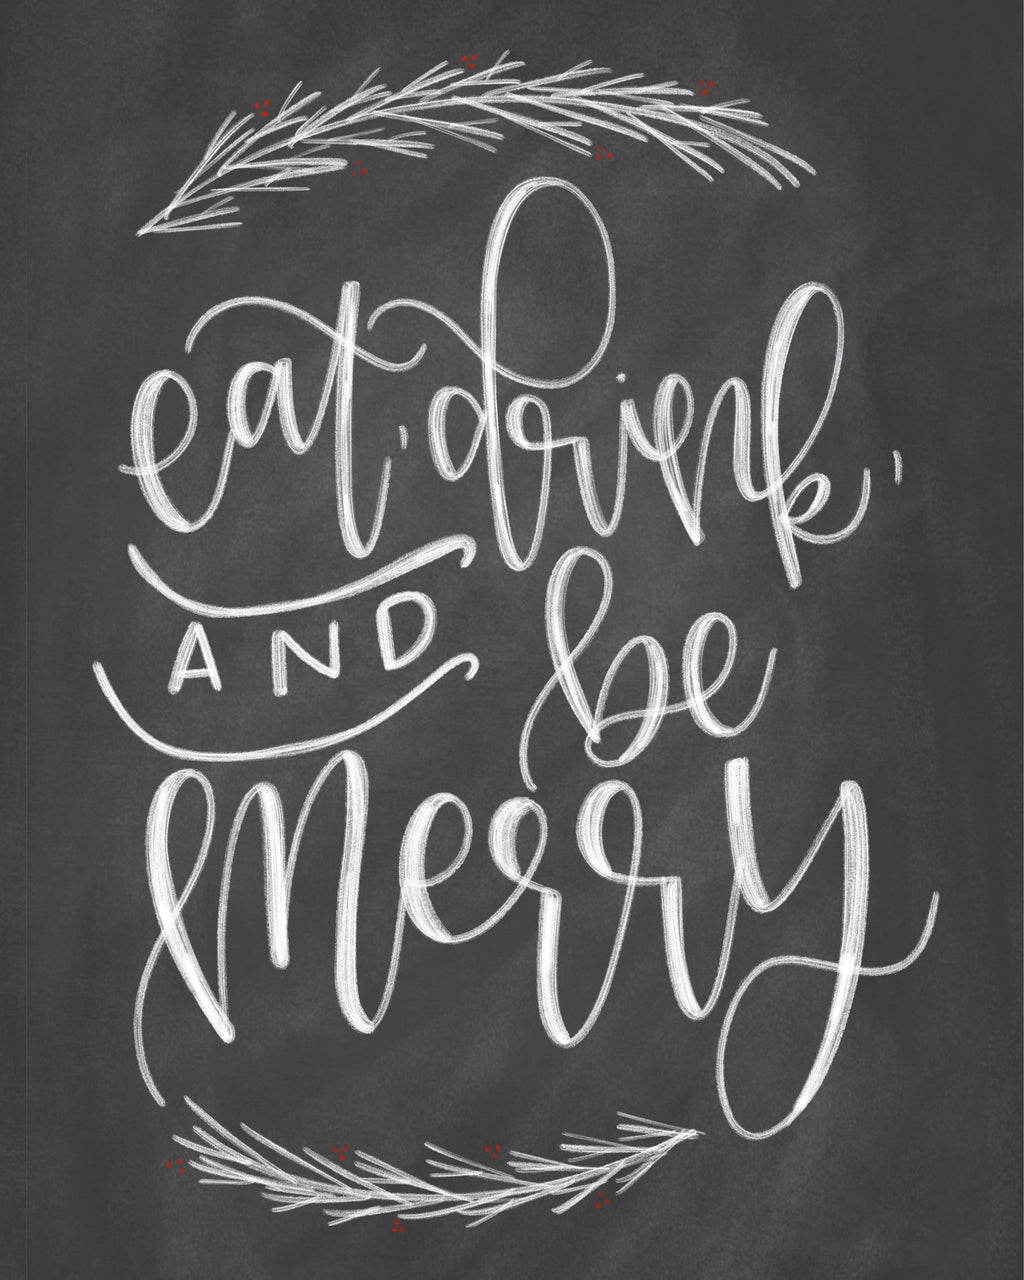 Free Eat, Drink and Be Merry Printable! - Chalkfulloflove